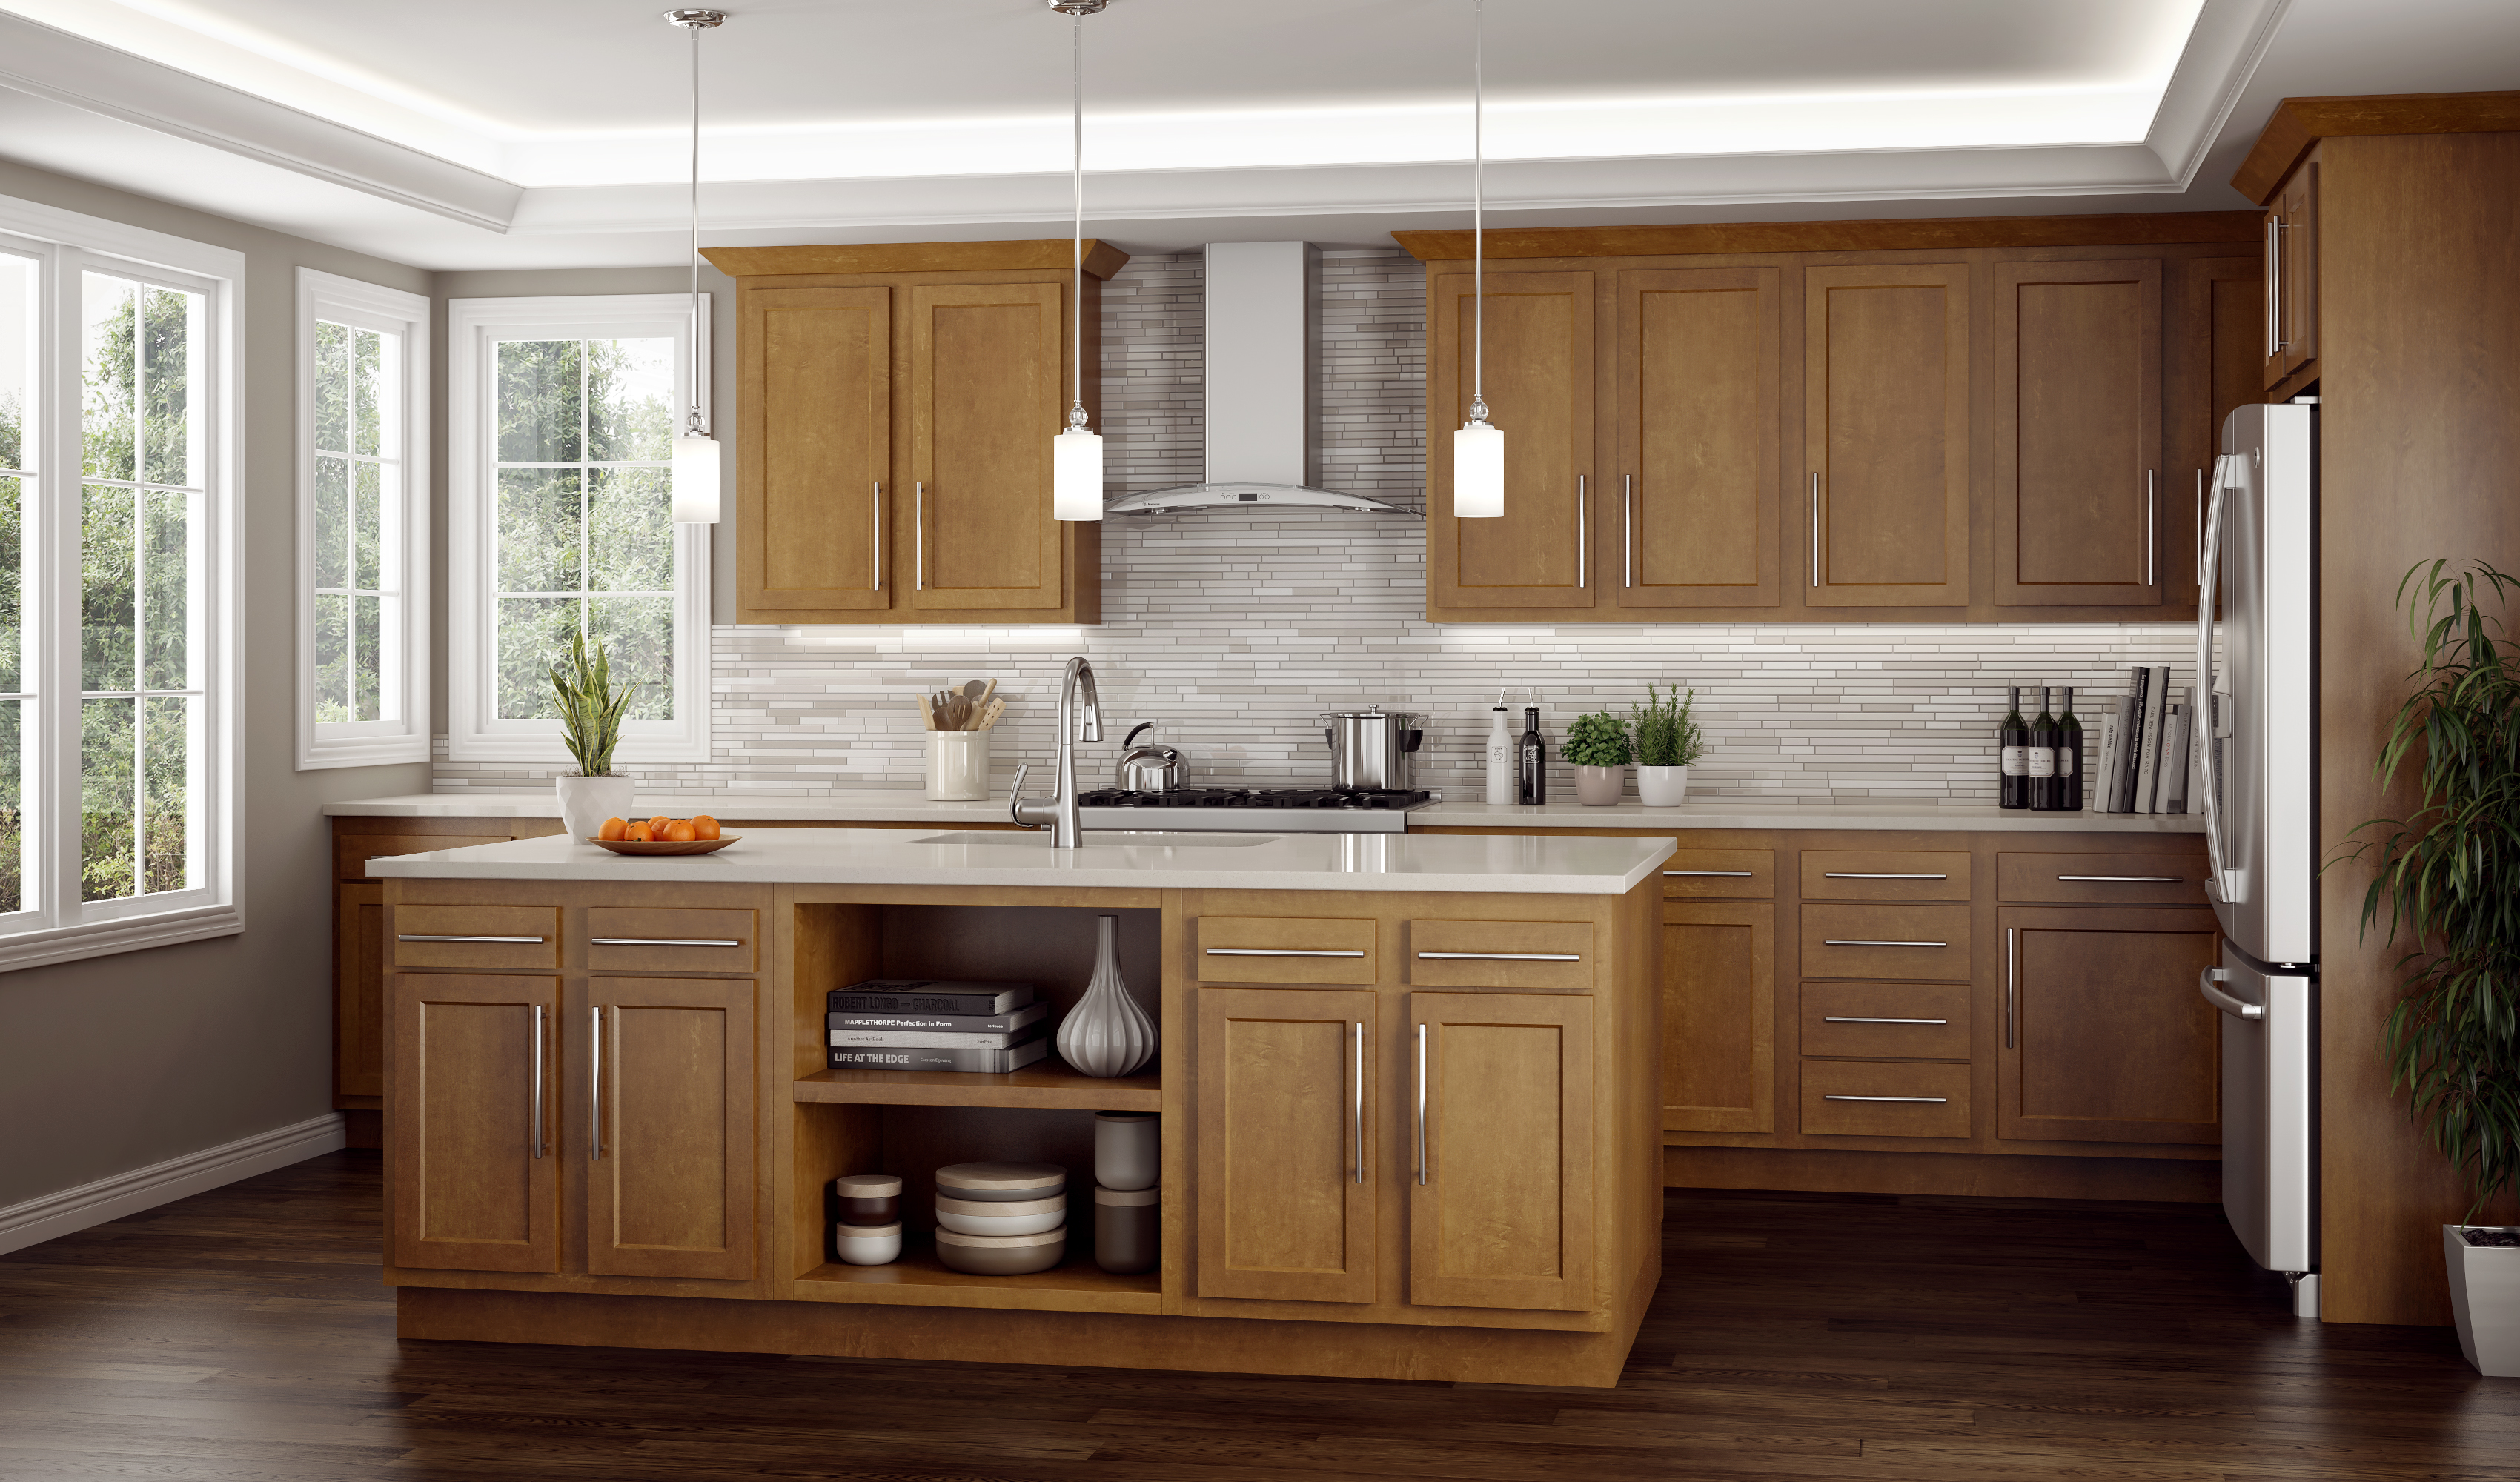 Warmwood Image Library Kitchen Kompact